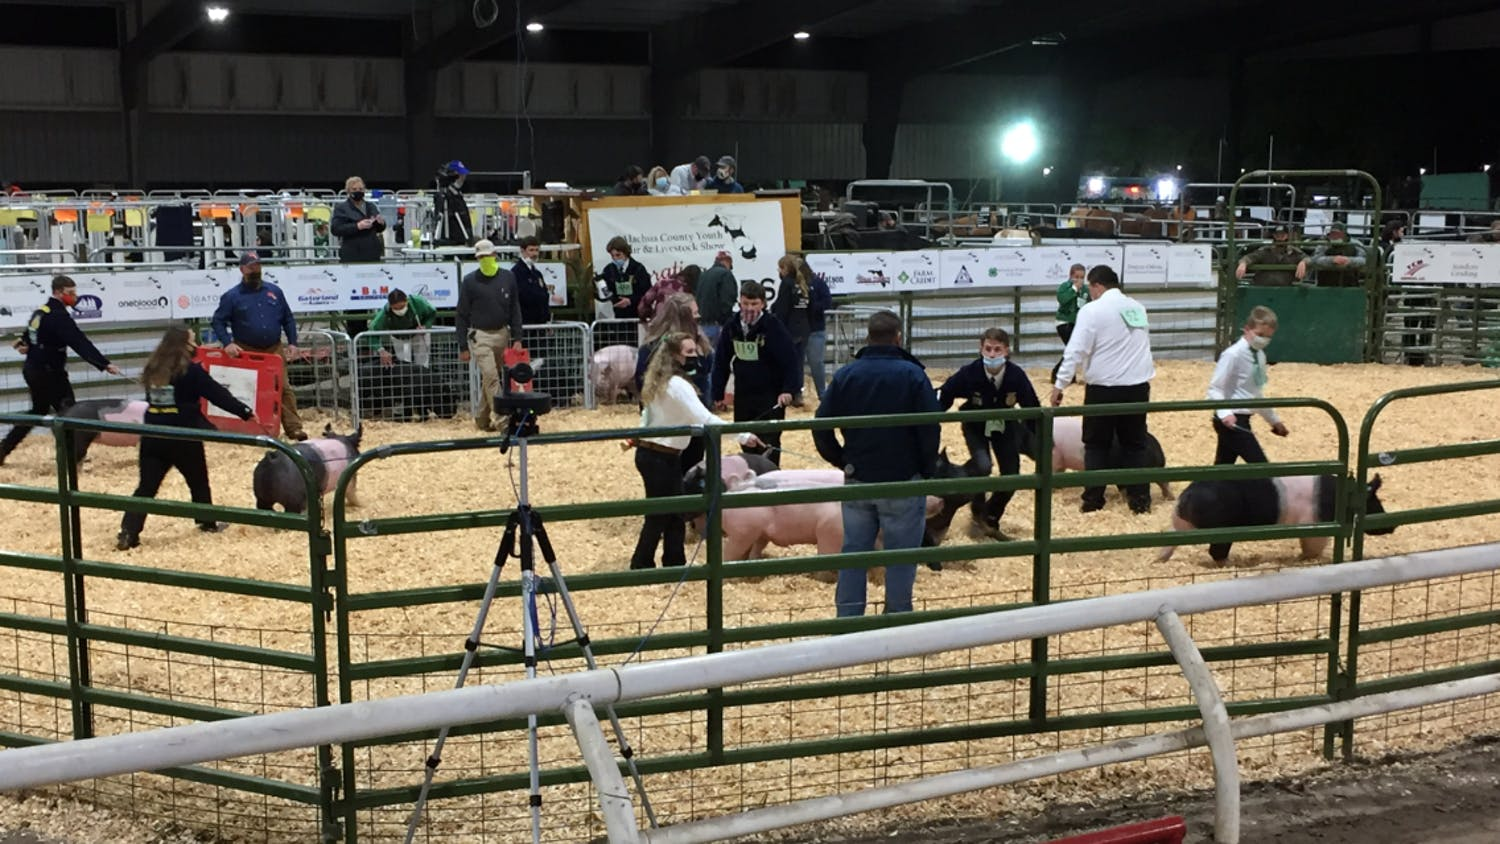 The annual event, previously held in Gainesville, was hosted at the Alachua County Agricultural and Equestrian Center in Newberry for the first time this year.